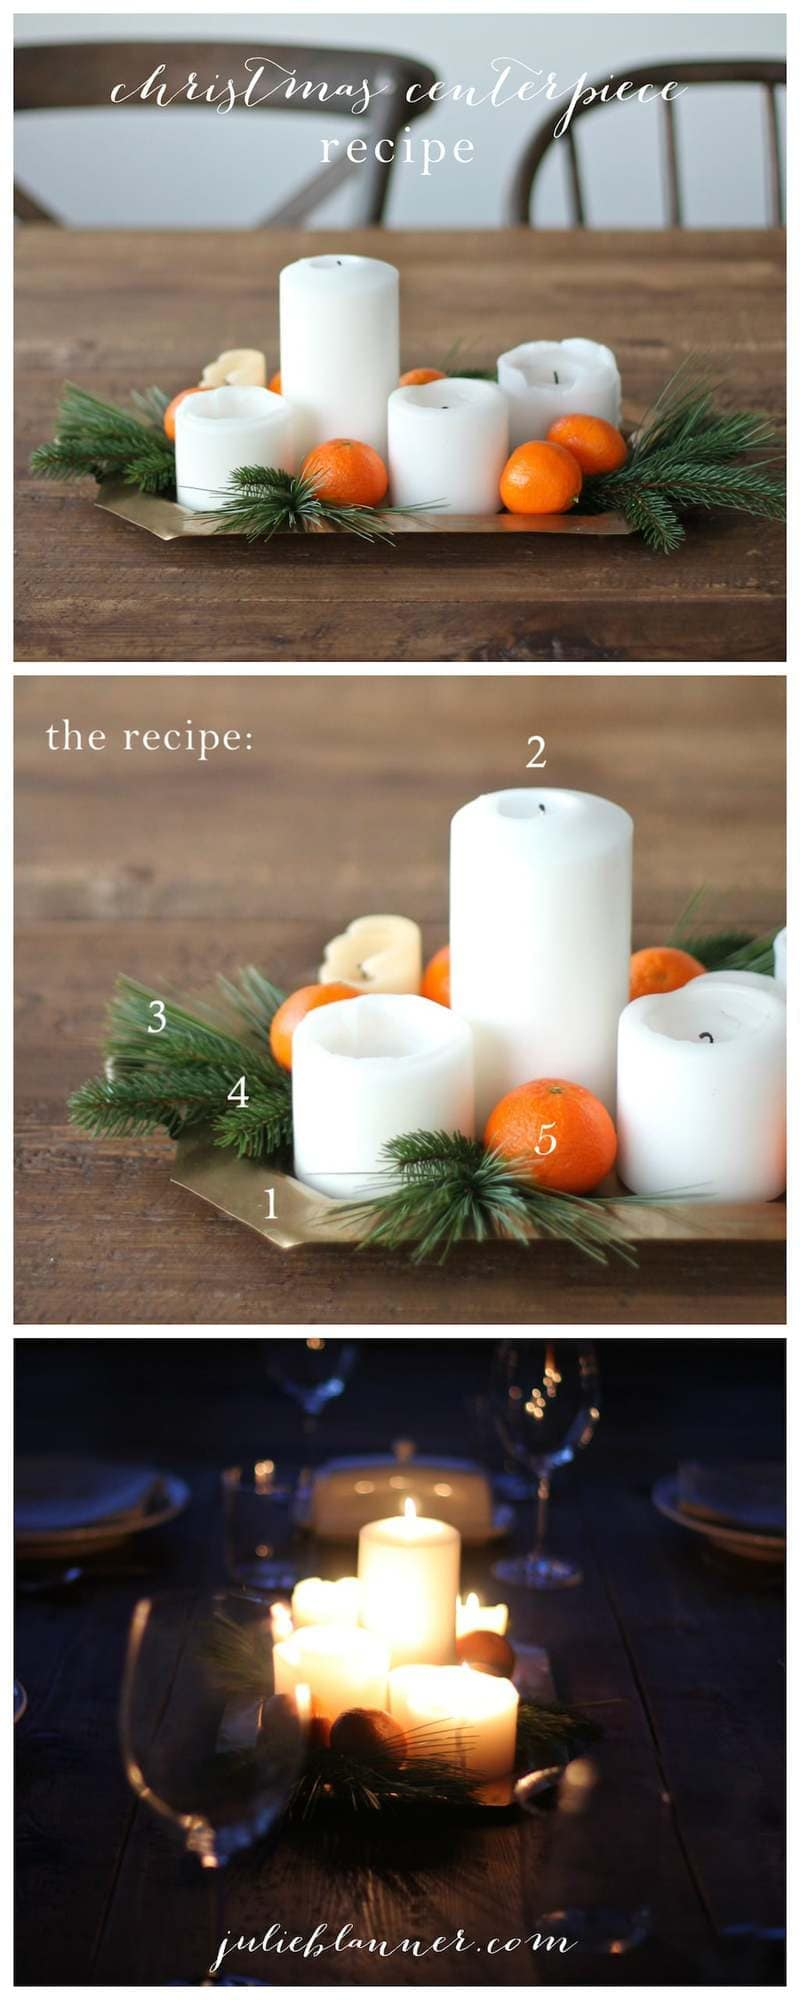 A step-by-step tutorial to create a Christmas centerpiece with things you already have!